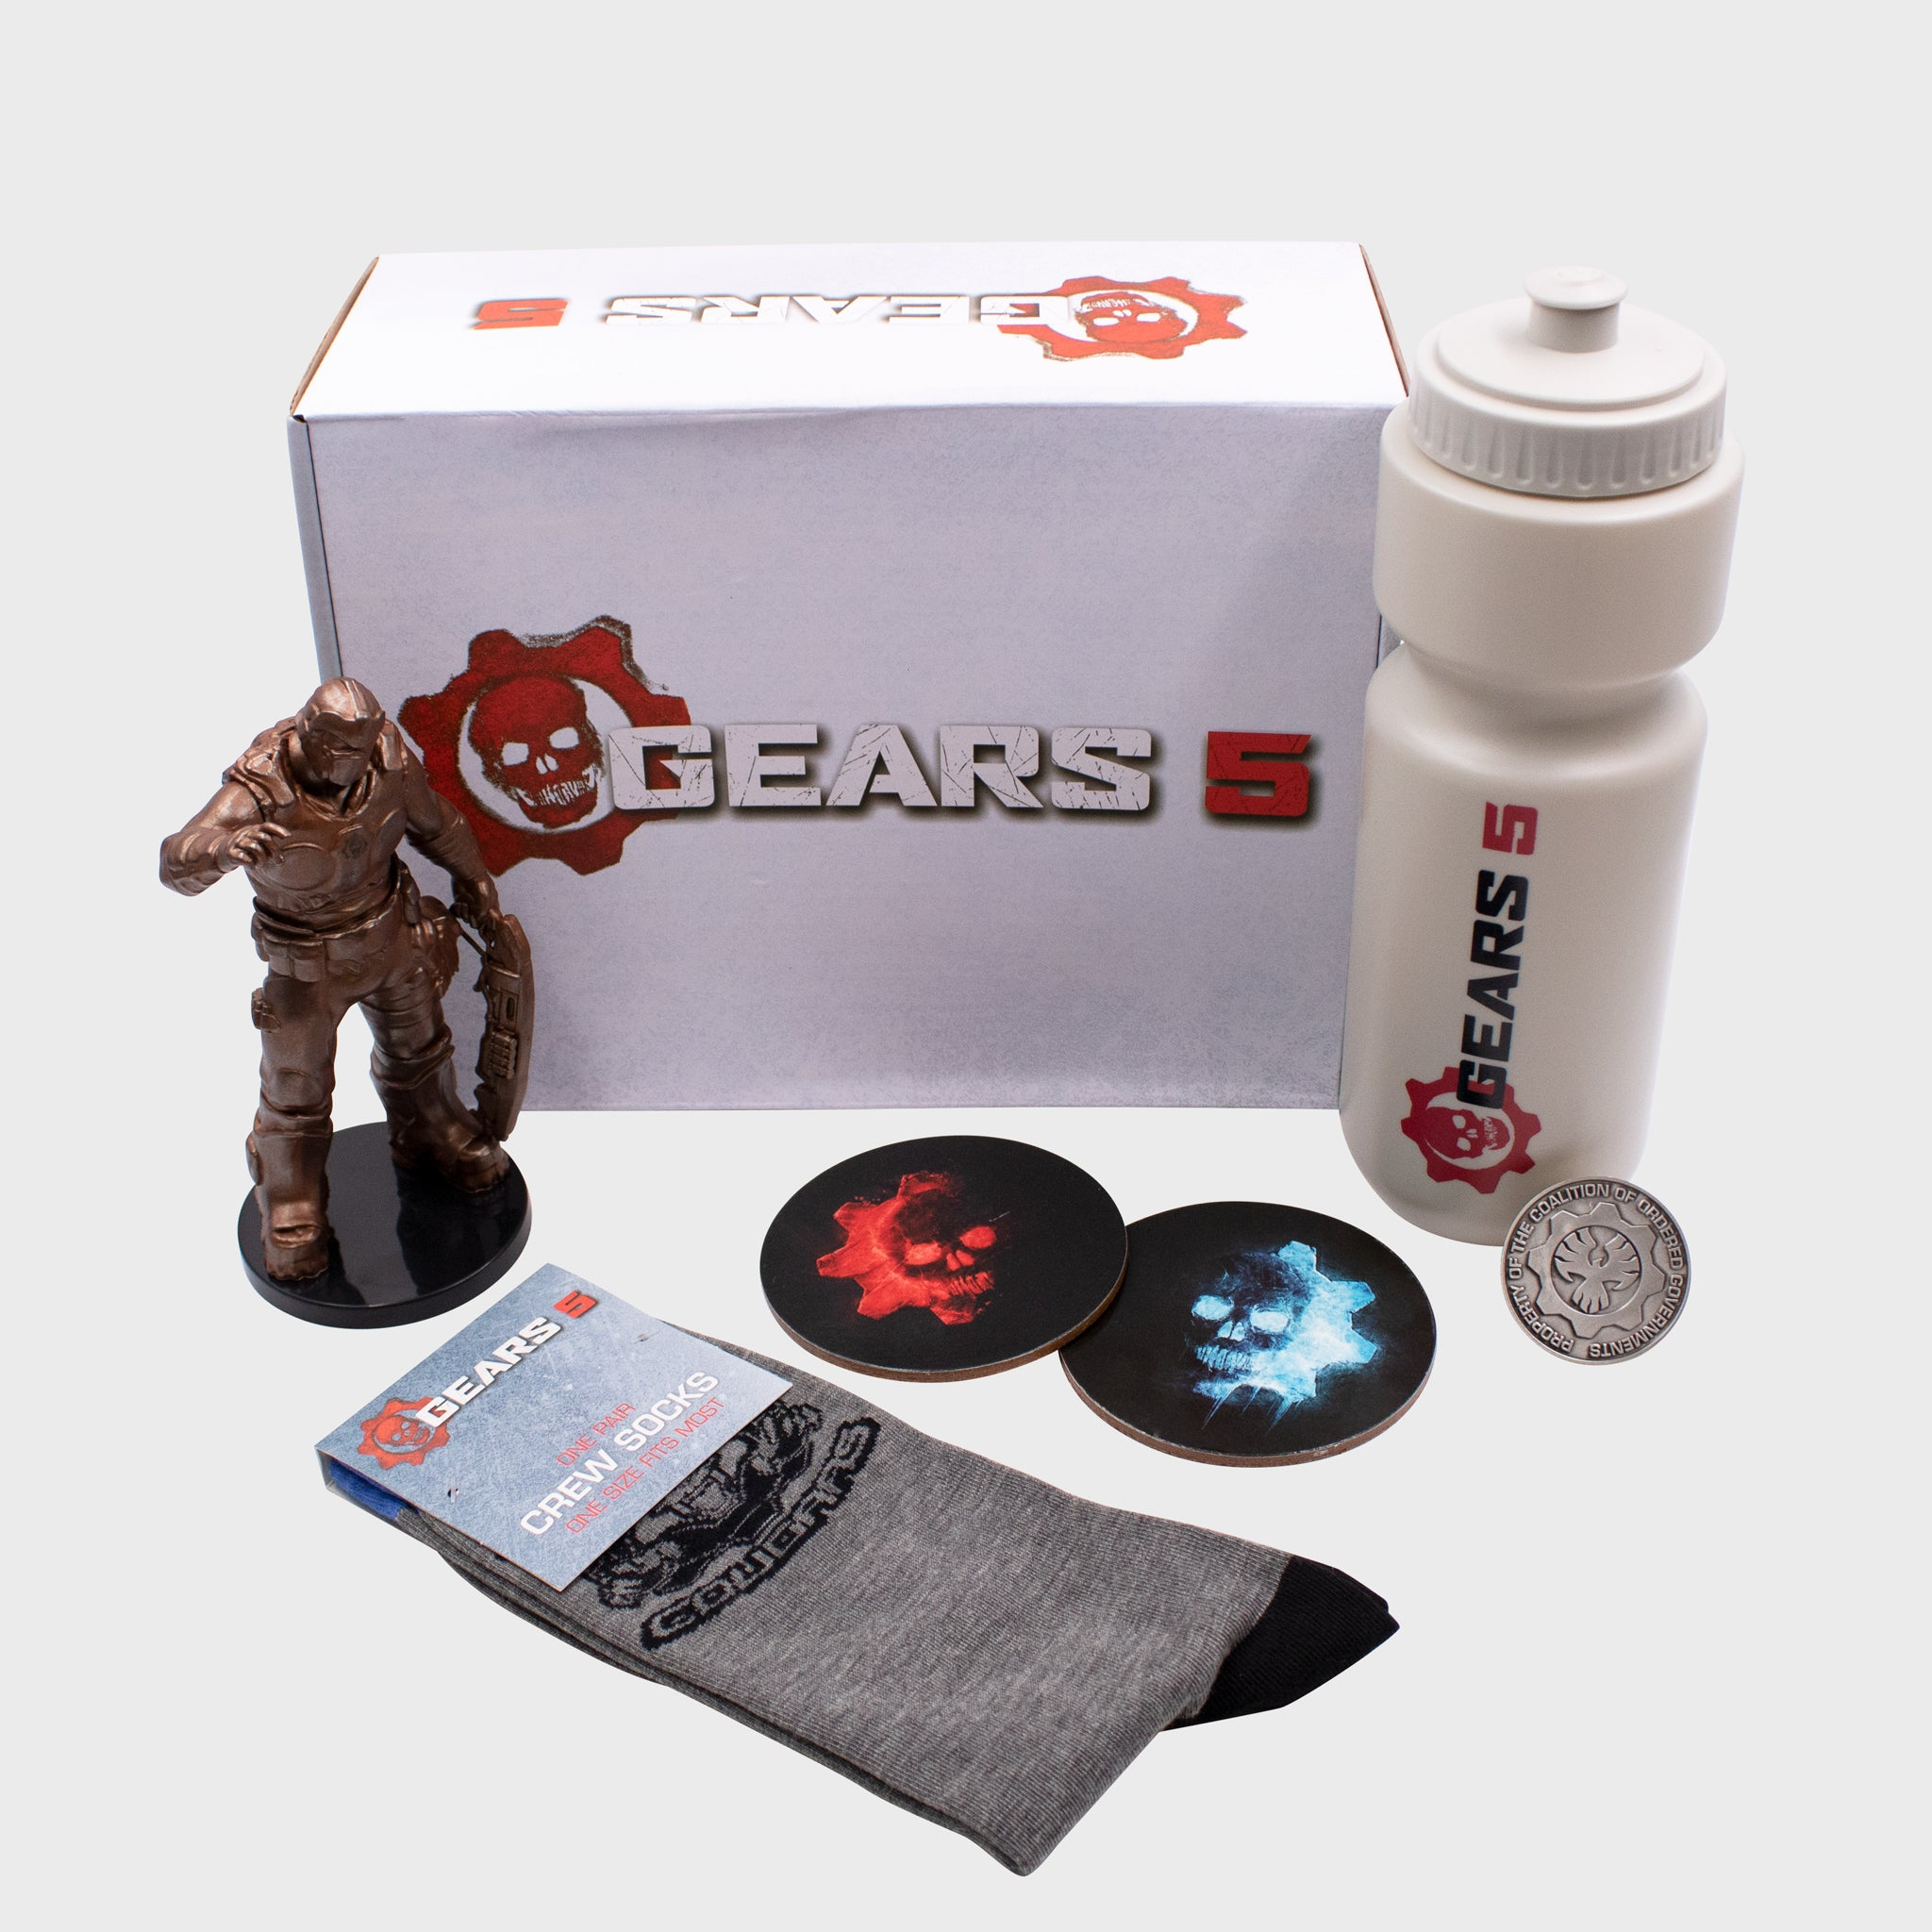 gears 5 collector box collectibles culturefly accessories exclusive vinyl figure water bottle coaster collector coin socks